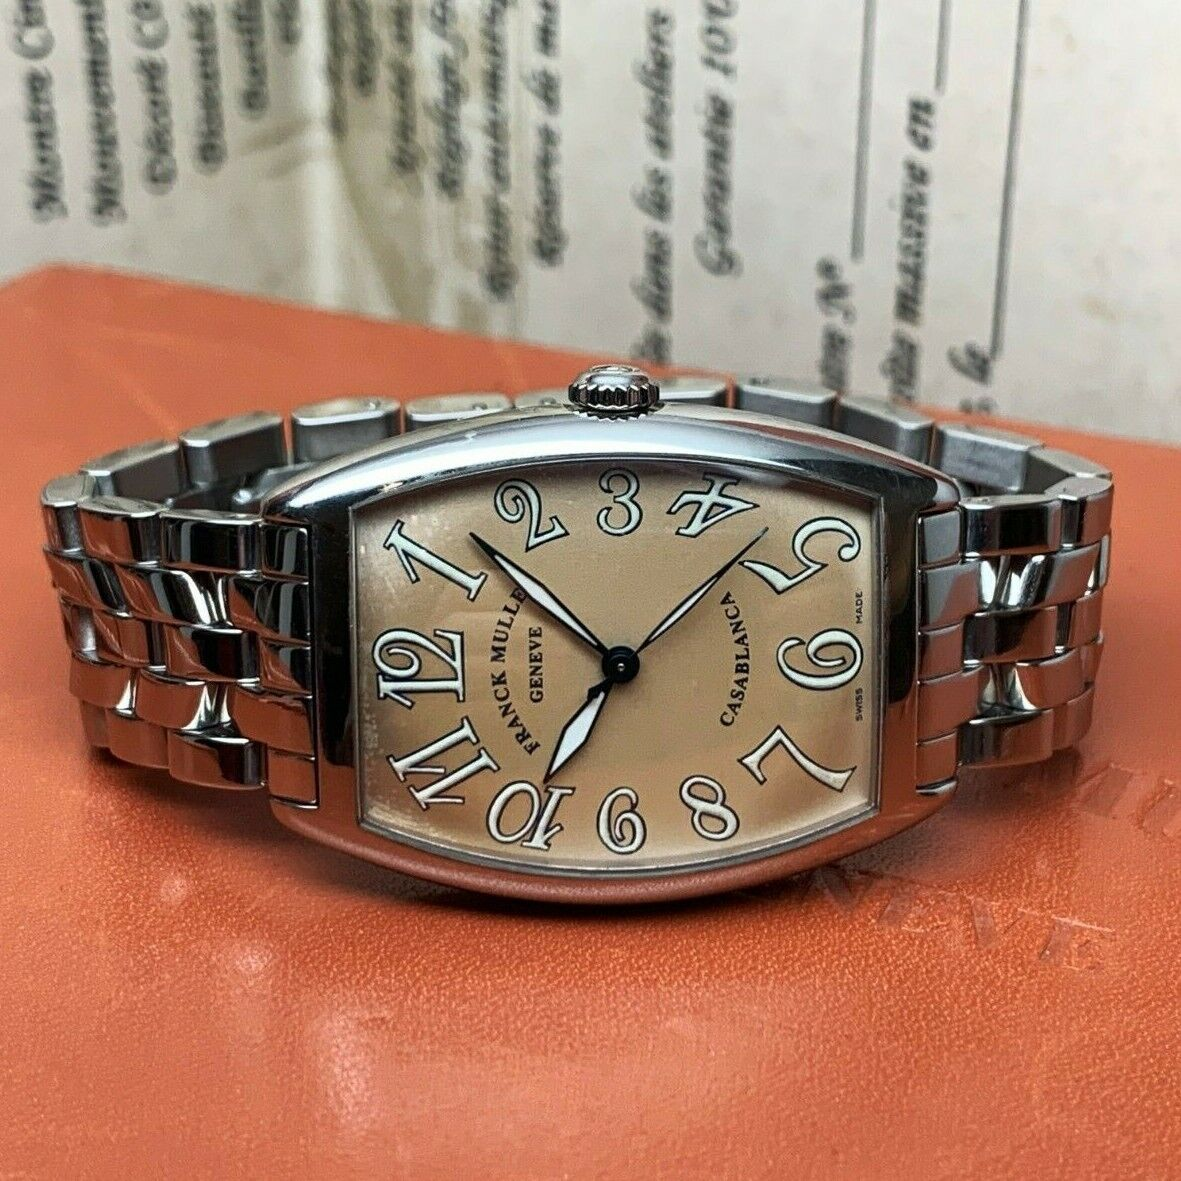 FRANCK MULLER Casablanca Ref. 2825 Automatic Swiss Watch Master of Complications - watch picture 1